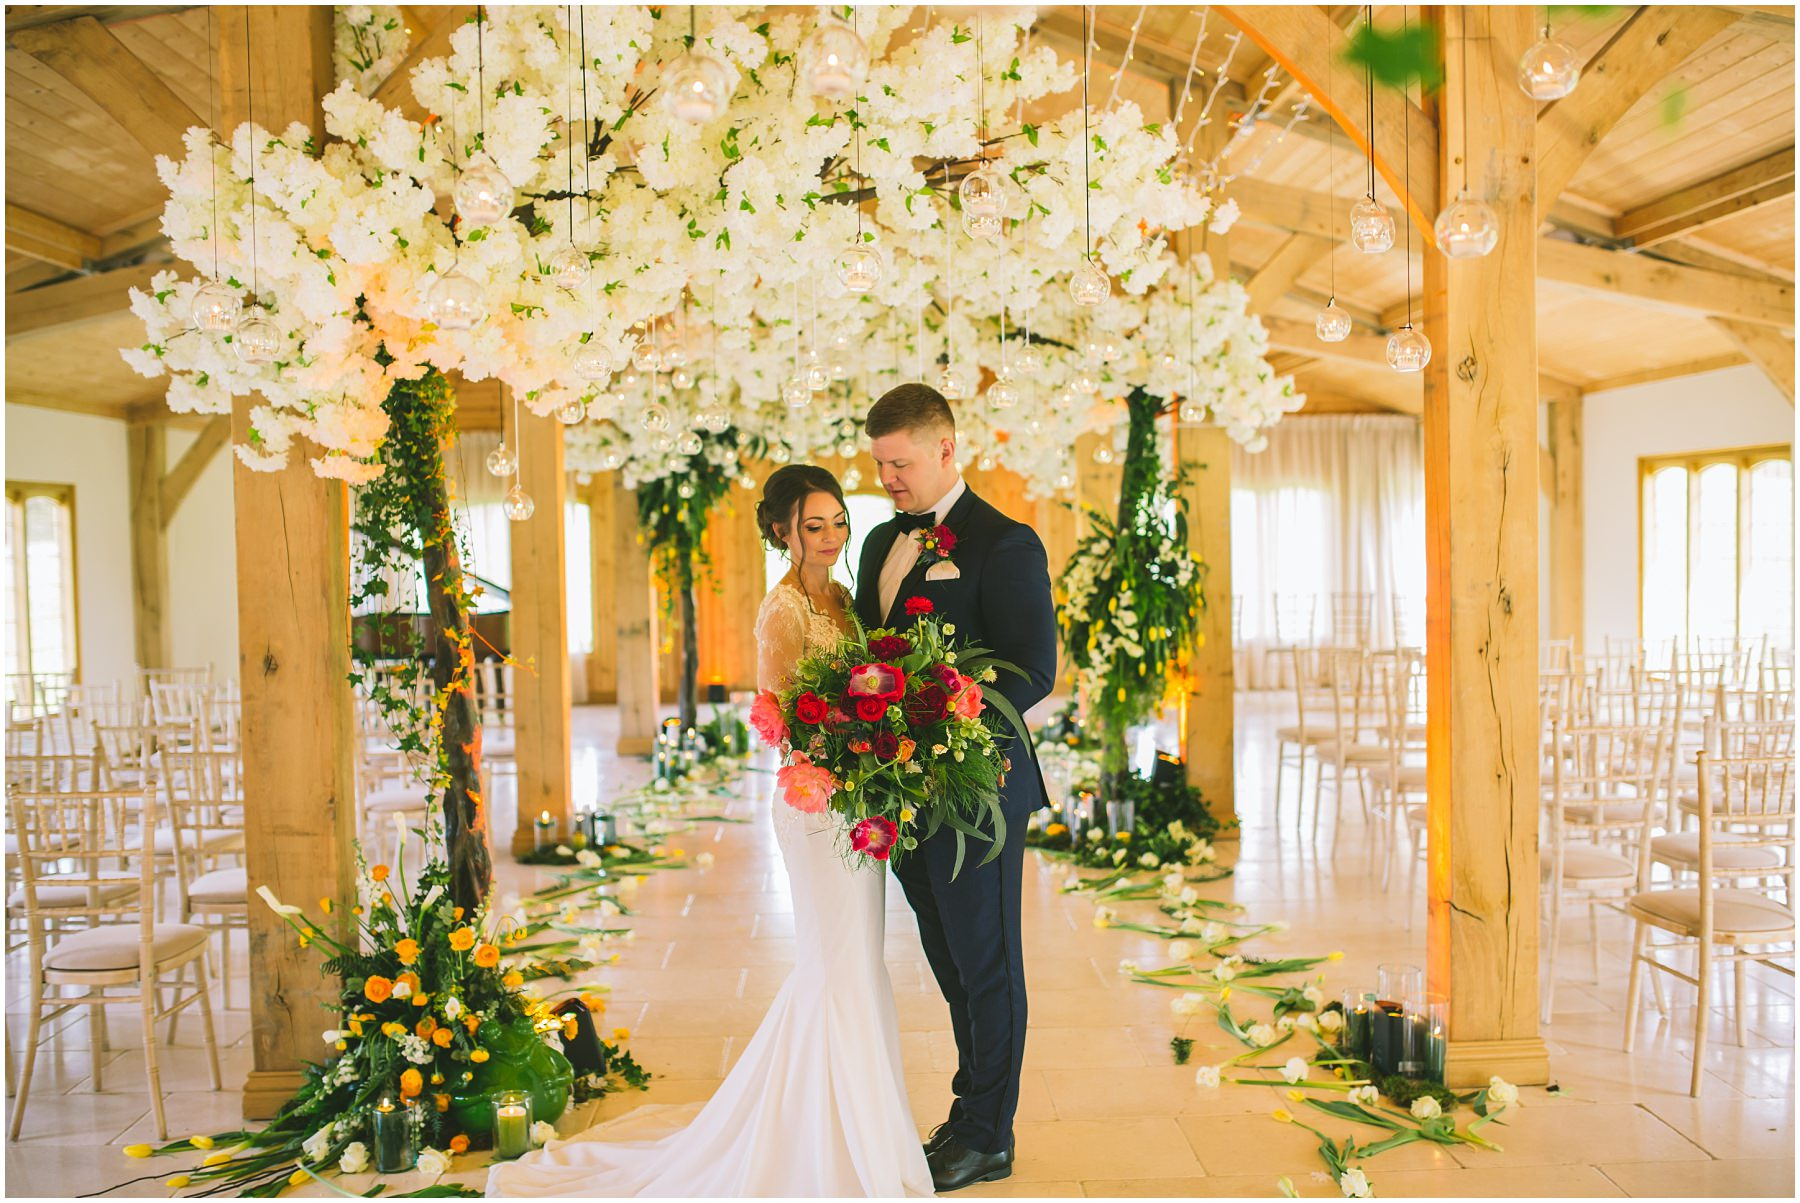 Inside the ceremony room at Colshaw Hall decorated by Red Floral Architecture